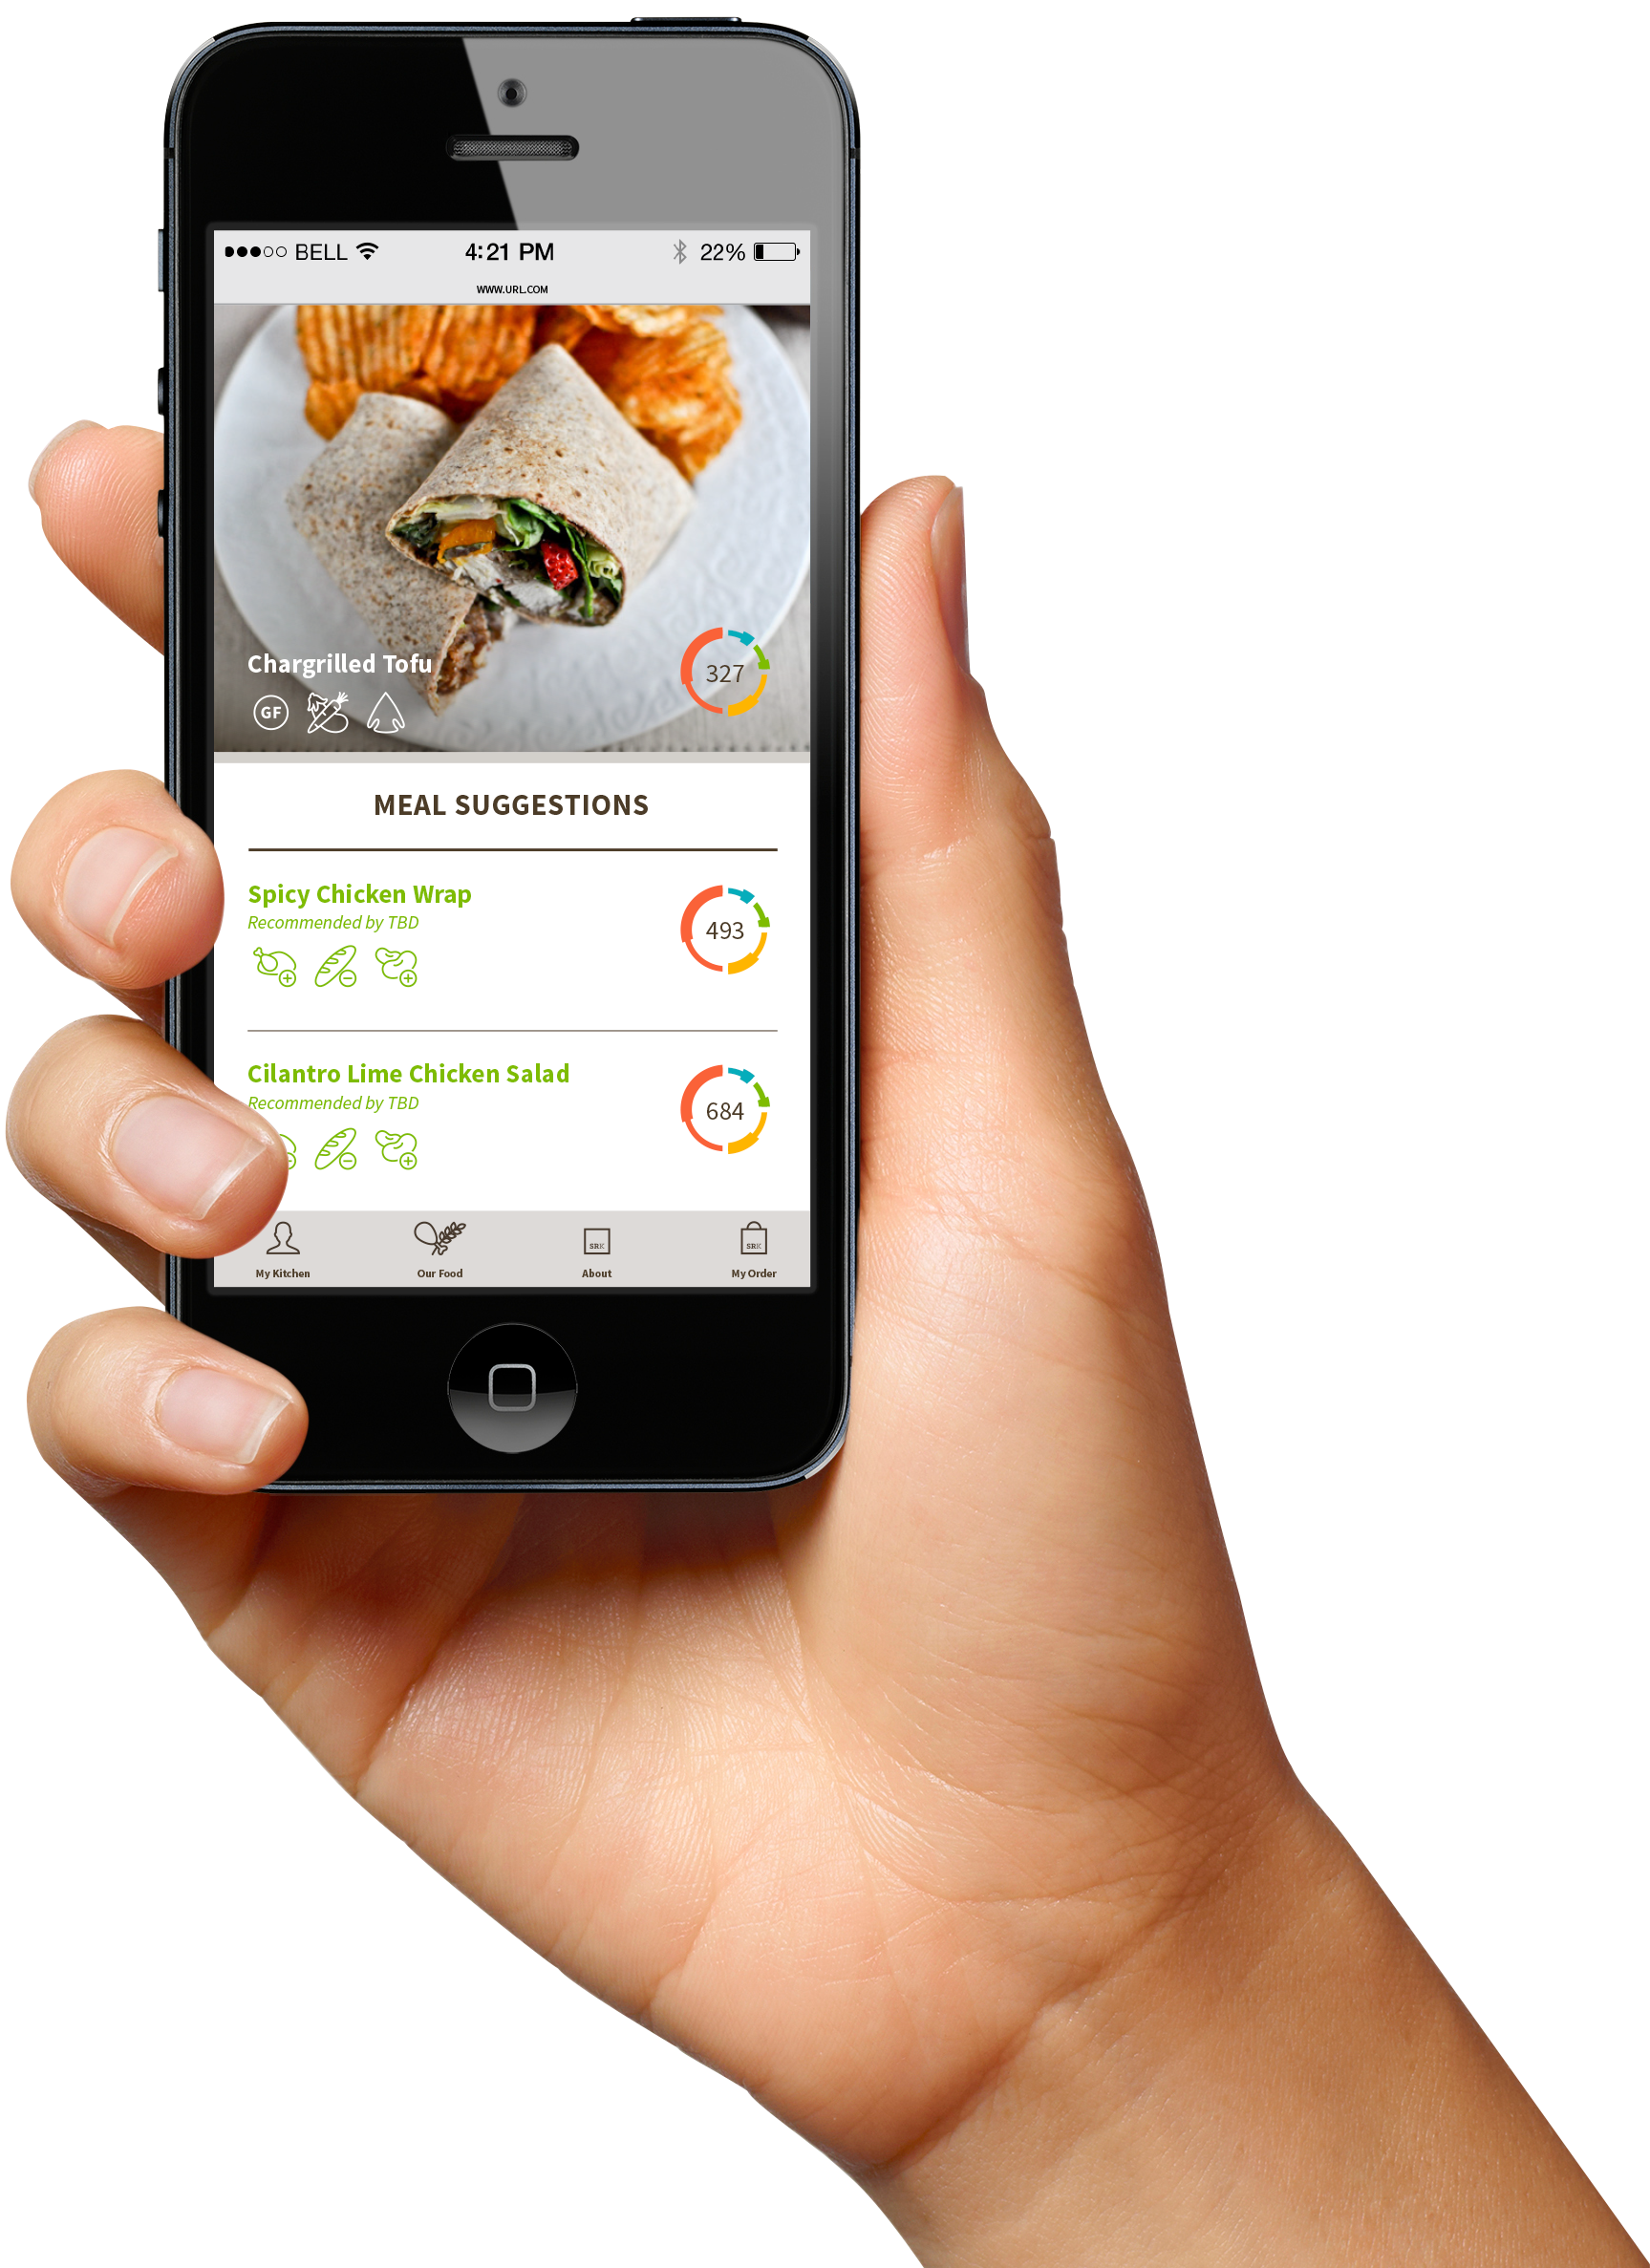 We collaborated with a visionary entrepreneur to develop a new app-driven restaurant concept that strives to help people truly eat more healthily and better match specific dietary needs in the quick-serve context.  Learn more  >